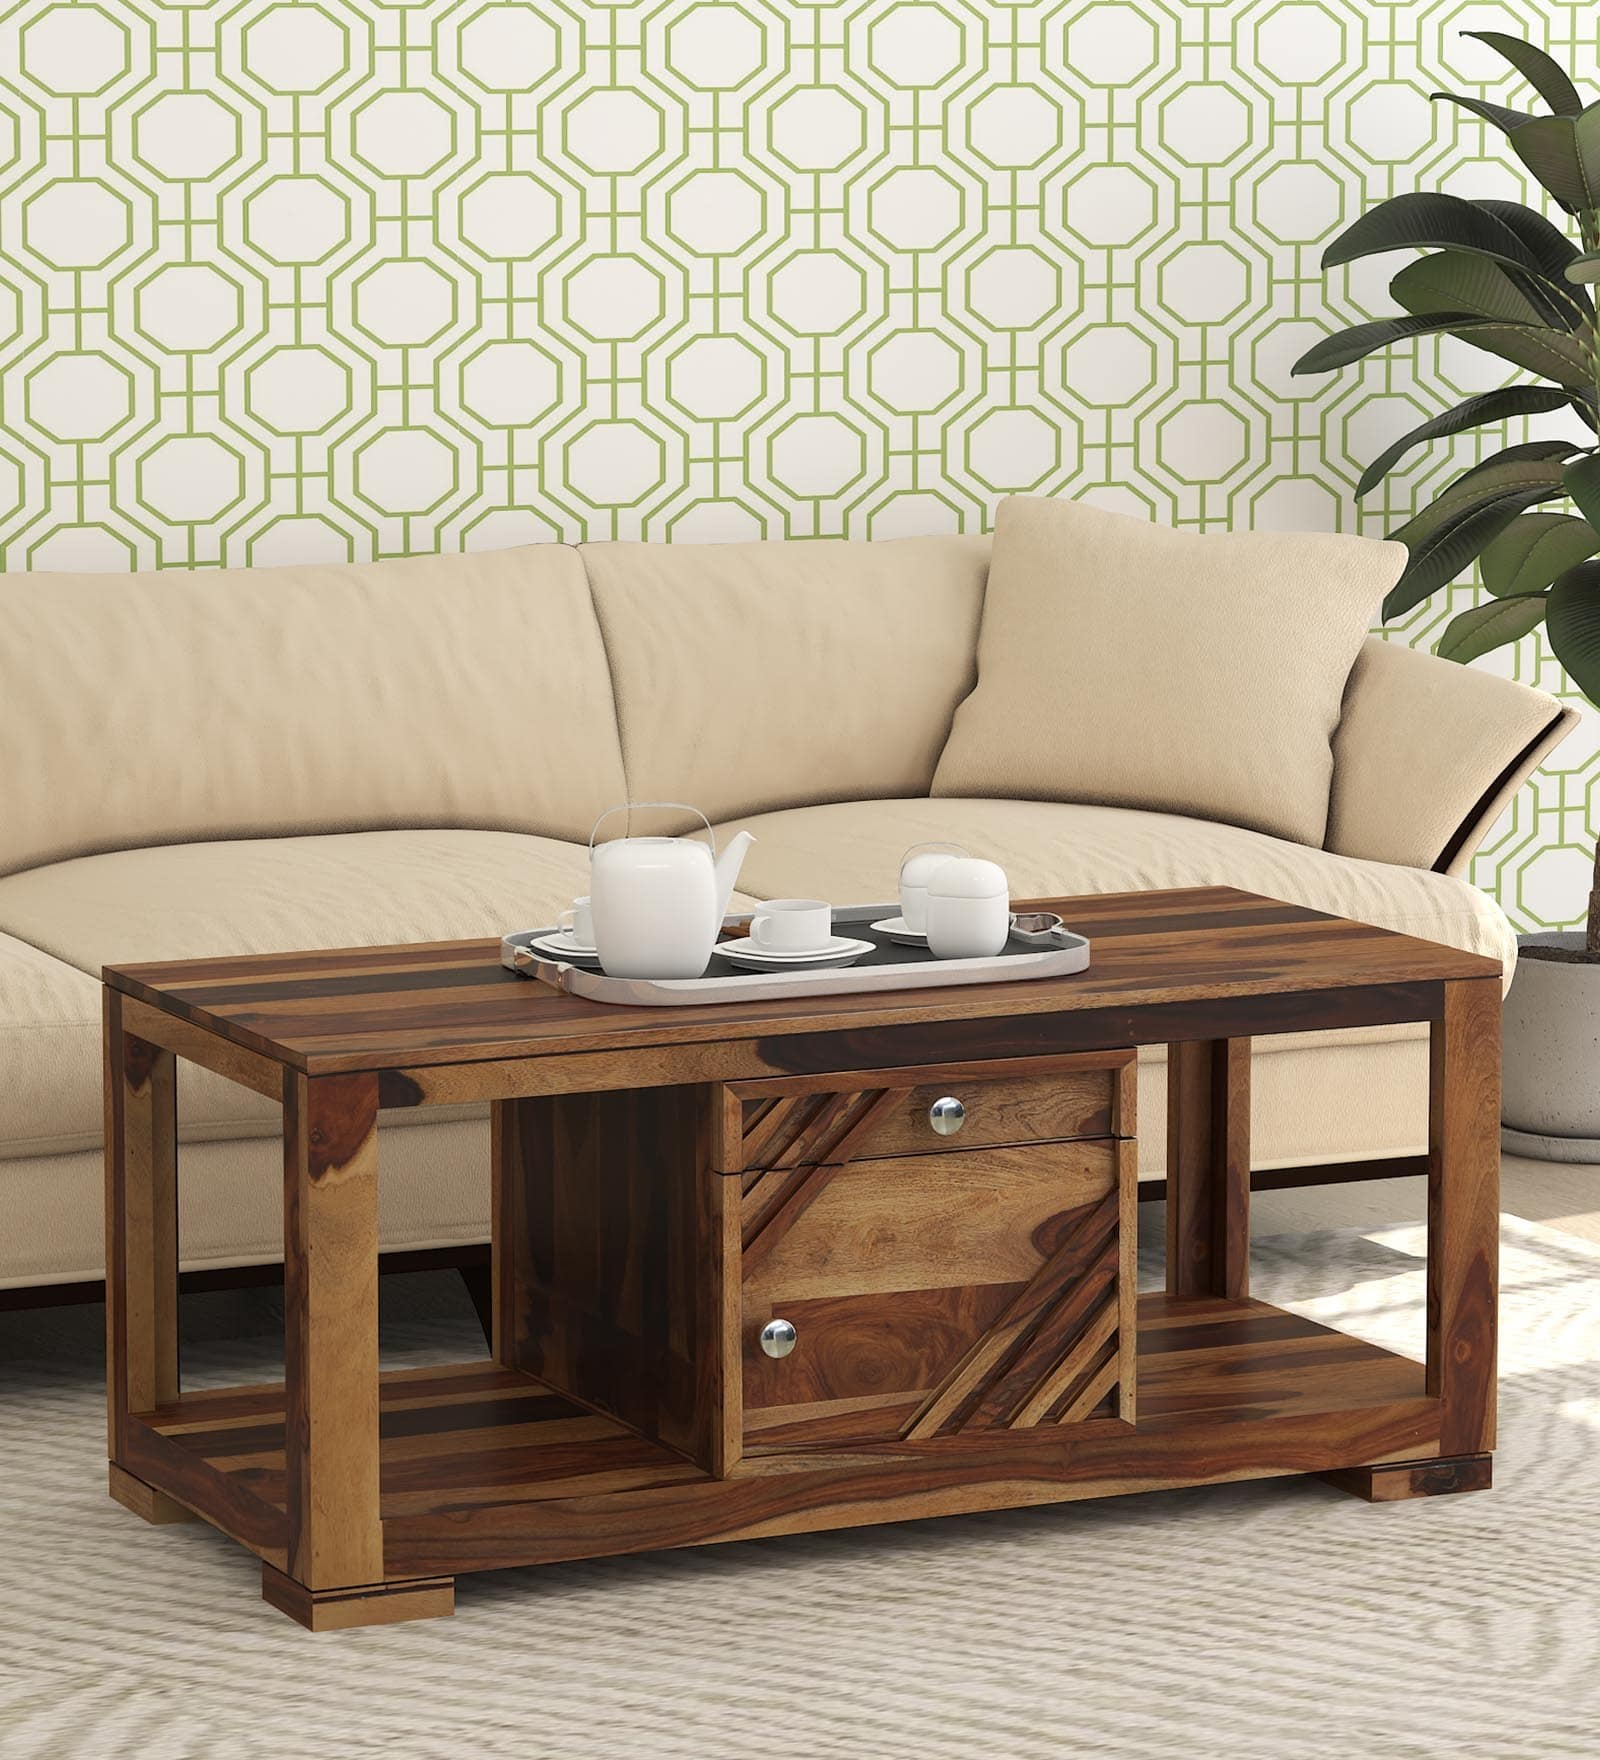 Sheesham Solid Wood Coffee Table With Storage In Rustic Teak Finish By Mft My Furniture Town